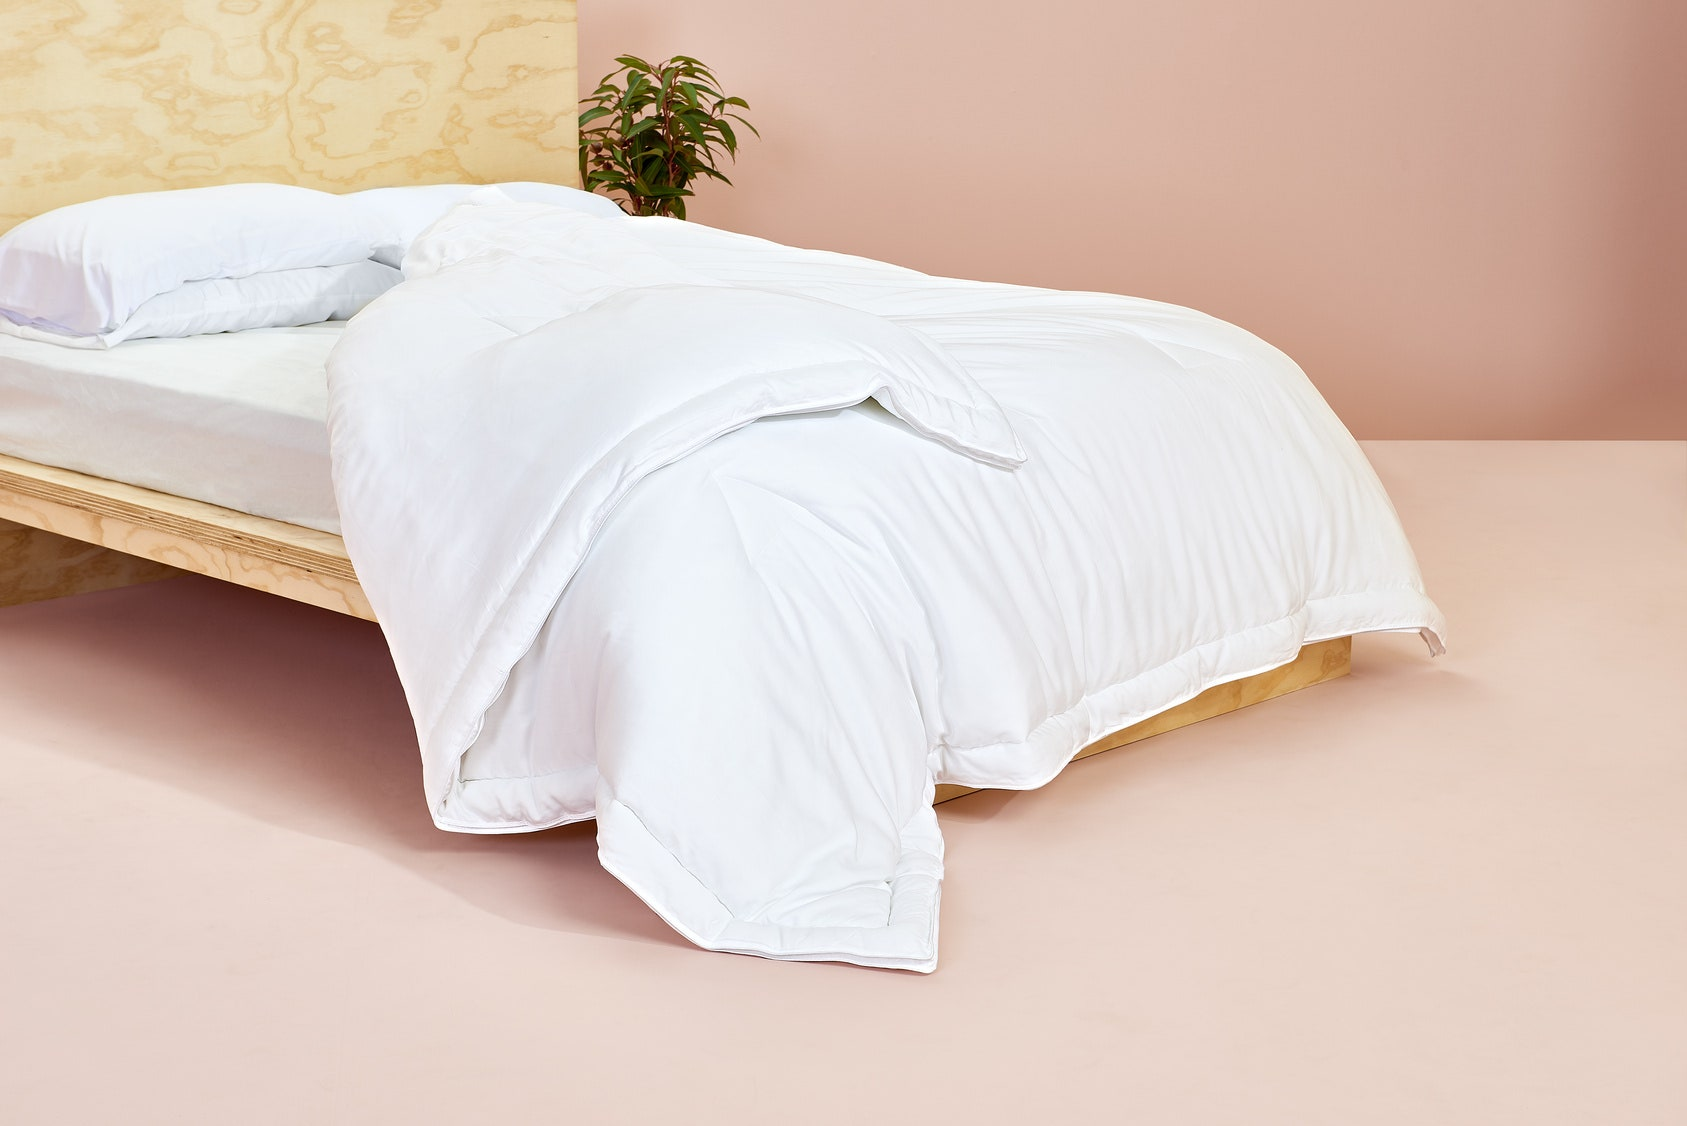 Do you need a new mattress? Here's what to look for